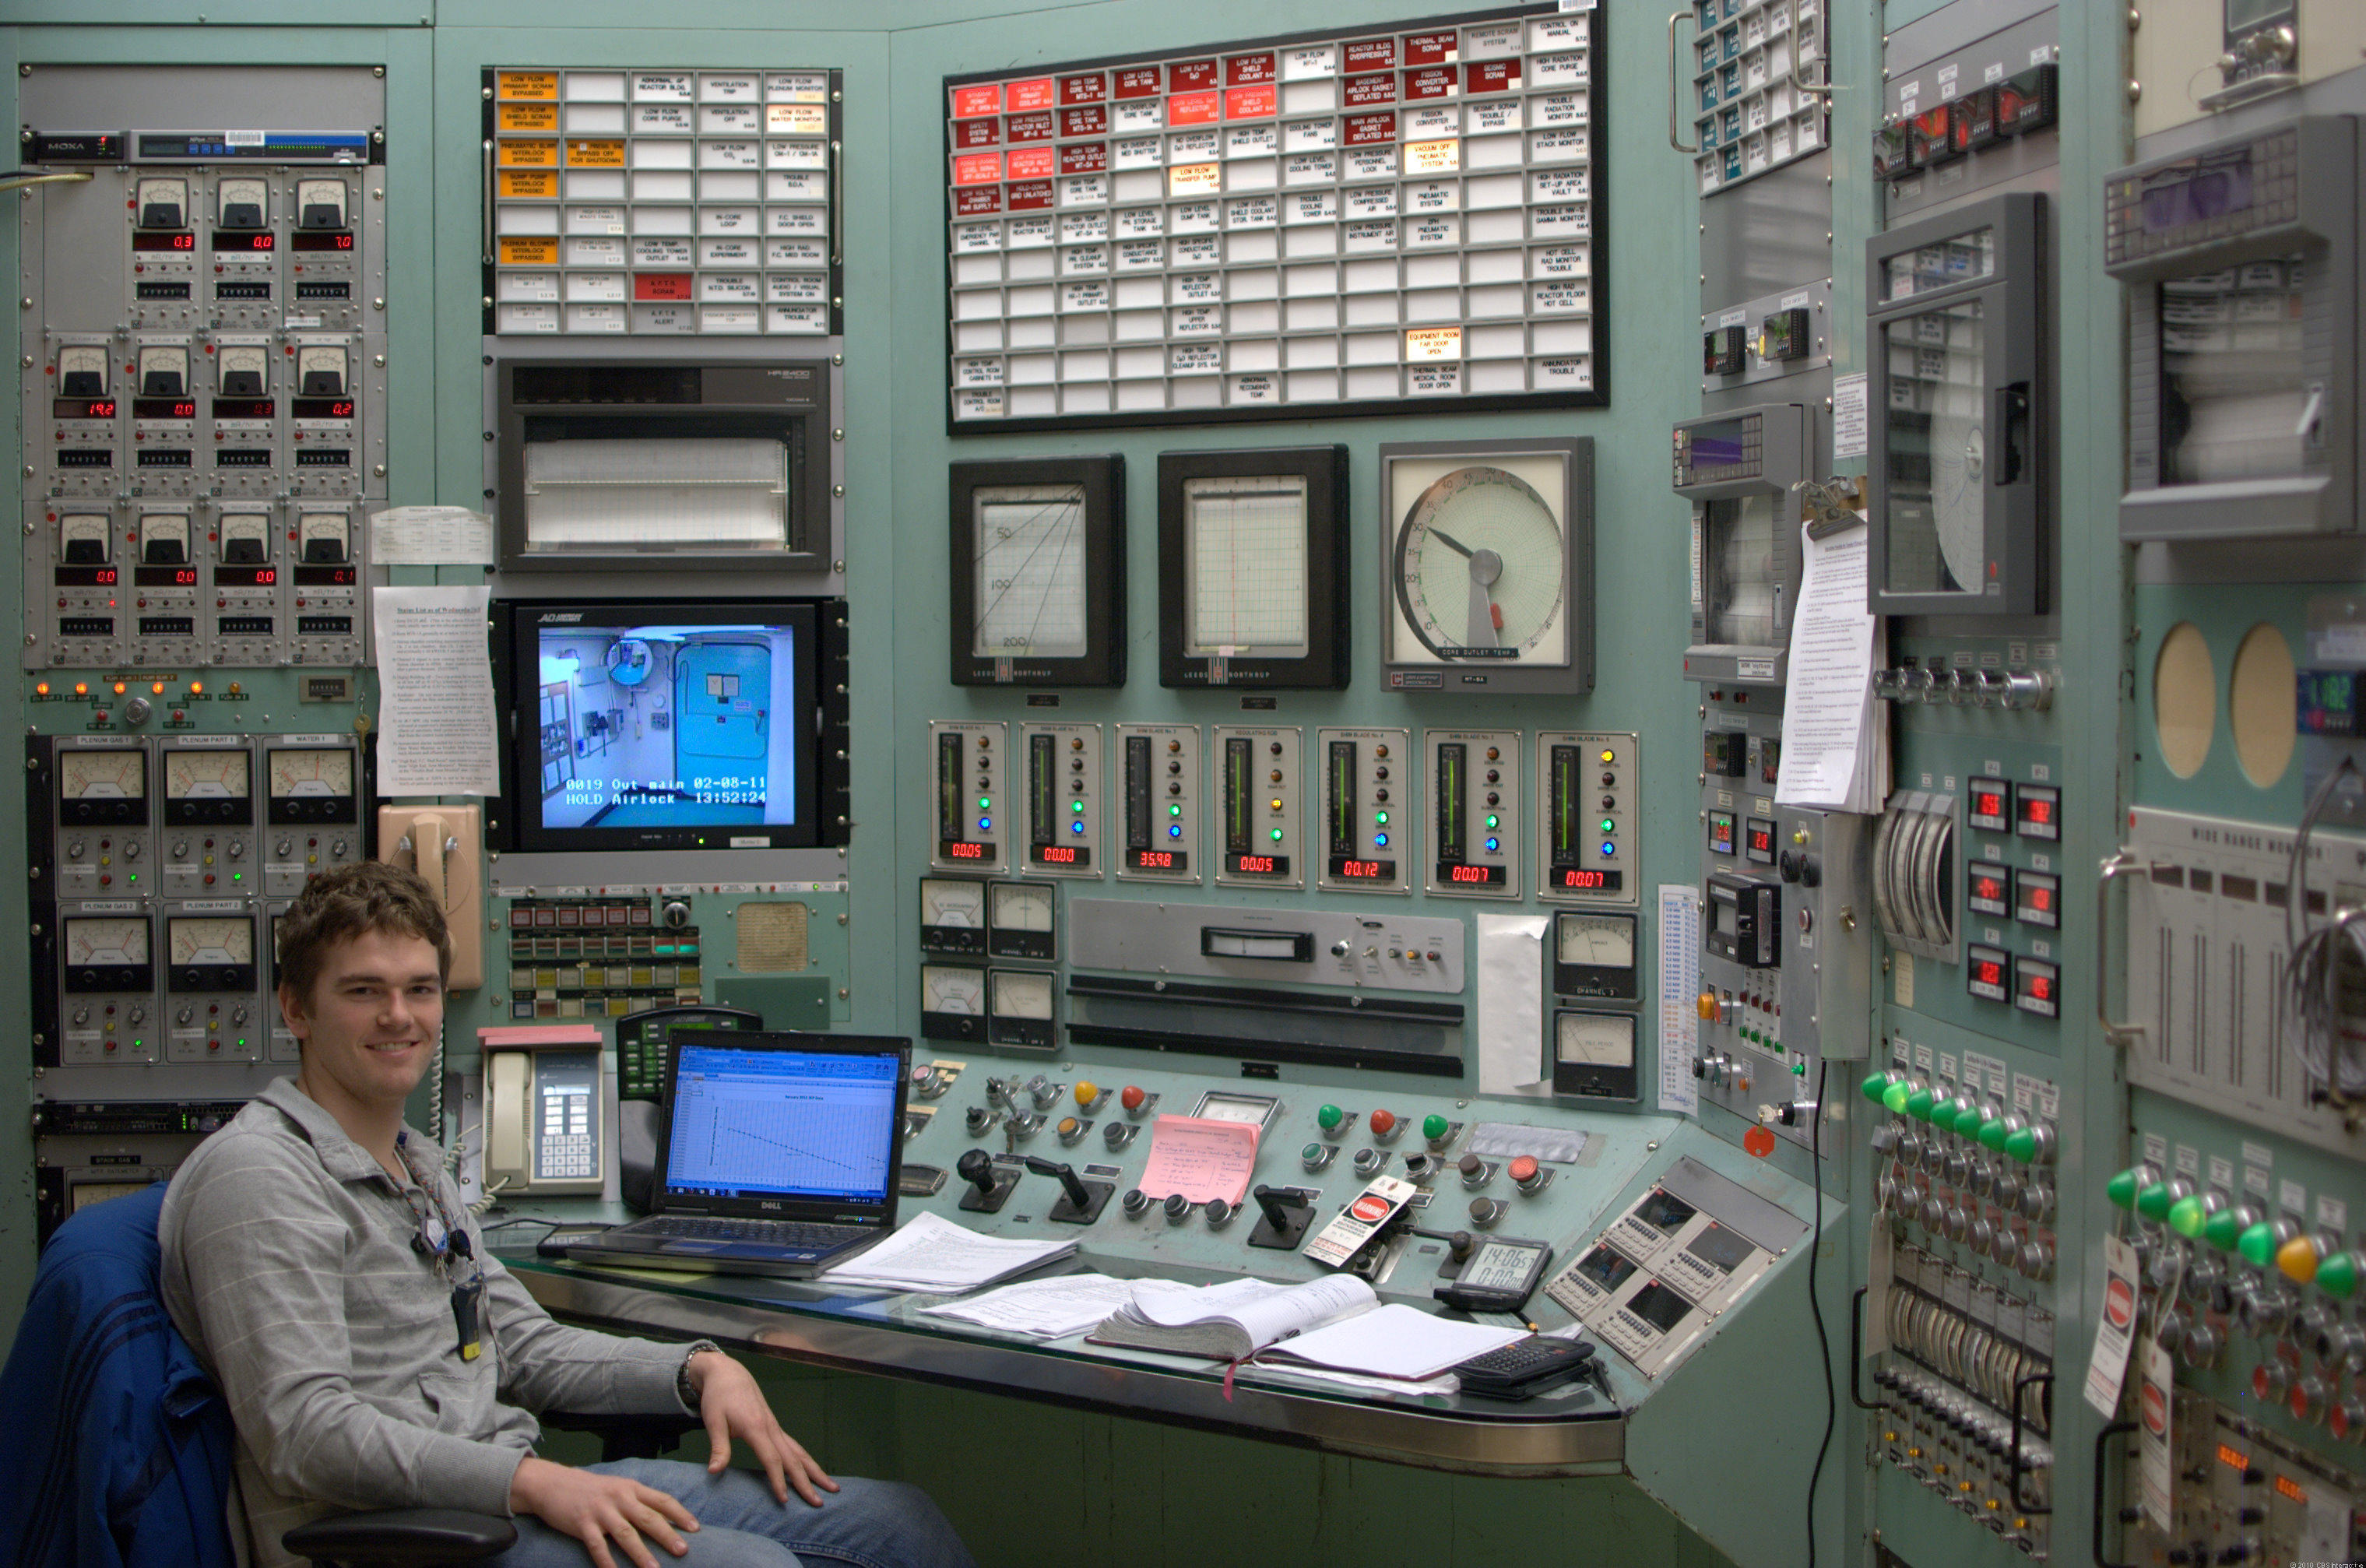 Control room mit 39 s nuclear reactor pictures cbs news for Futuristic control room